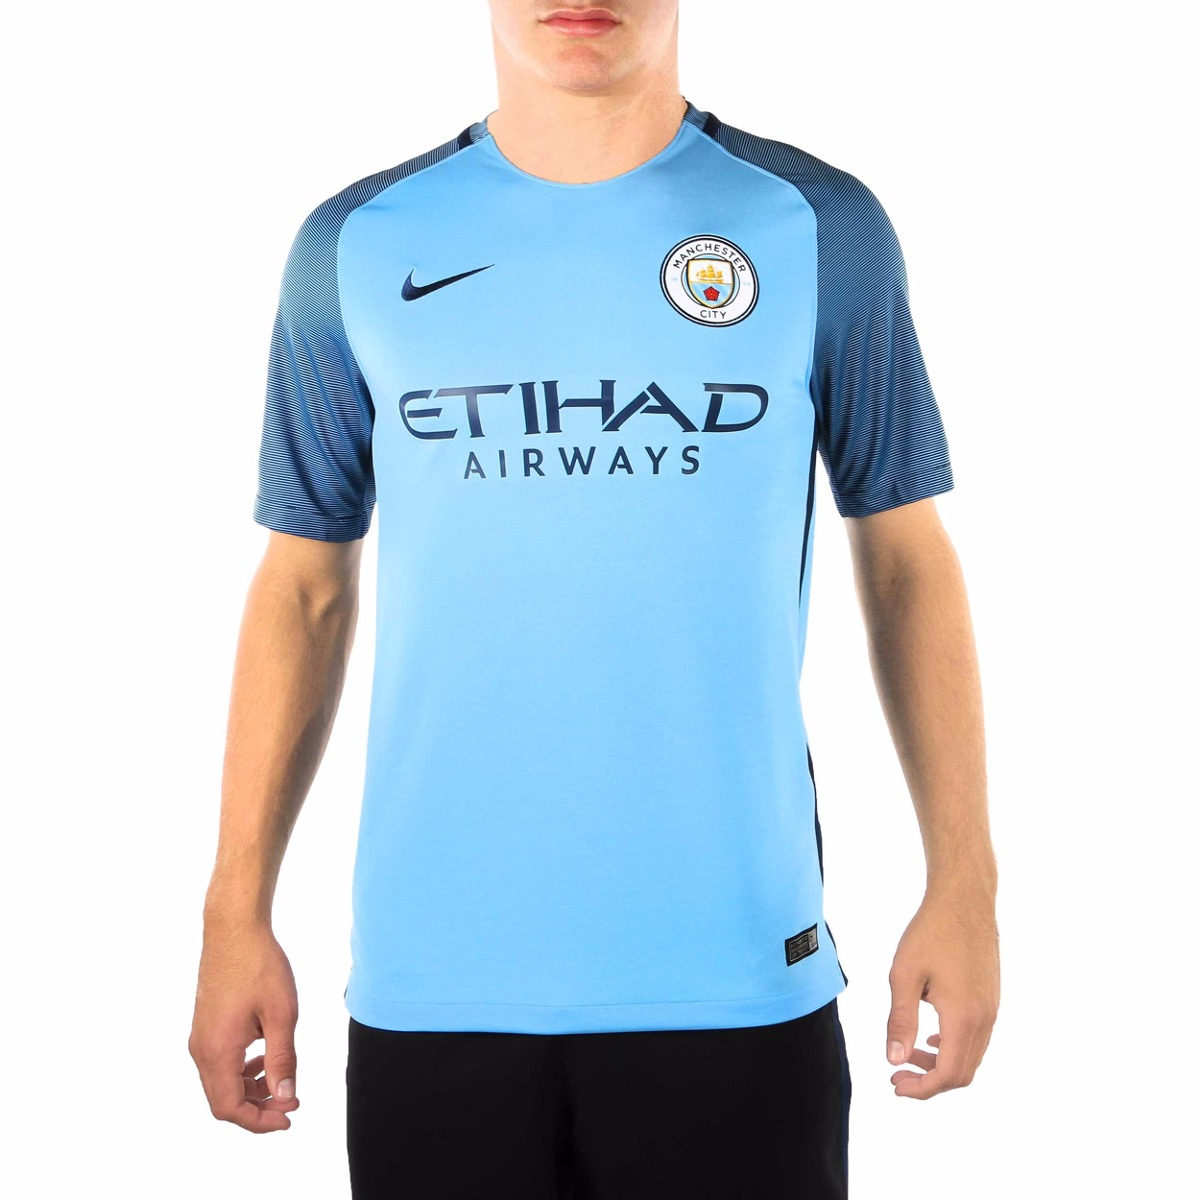 301186f49 camiseta manchester city oficial 2016 2017 local nike. Cargando zoom... camiseta  manchester city. Cargando zoom.